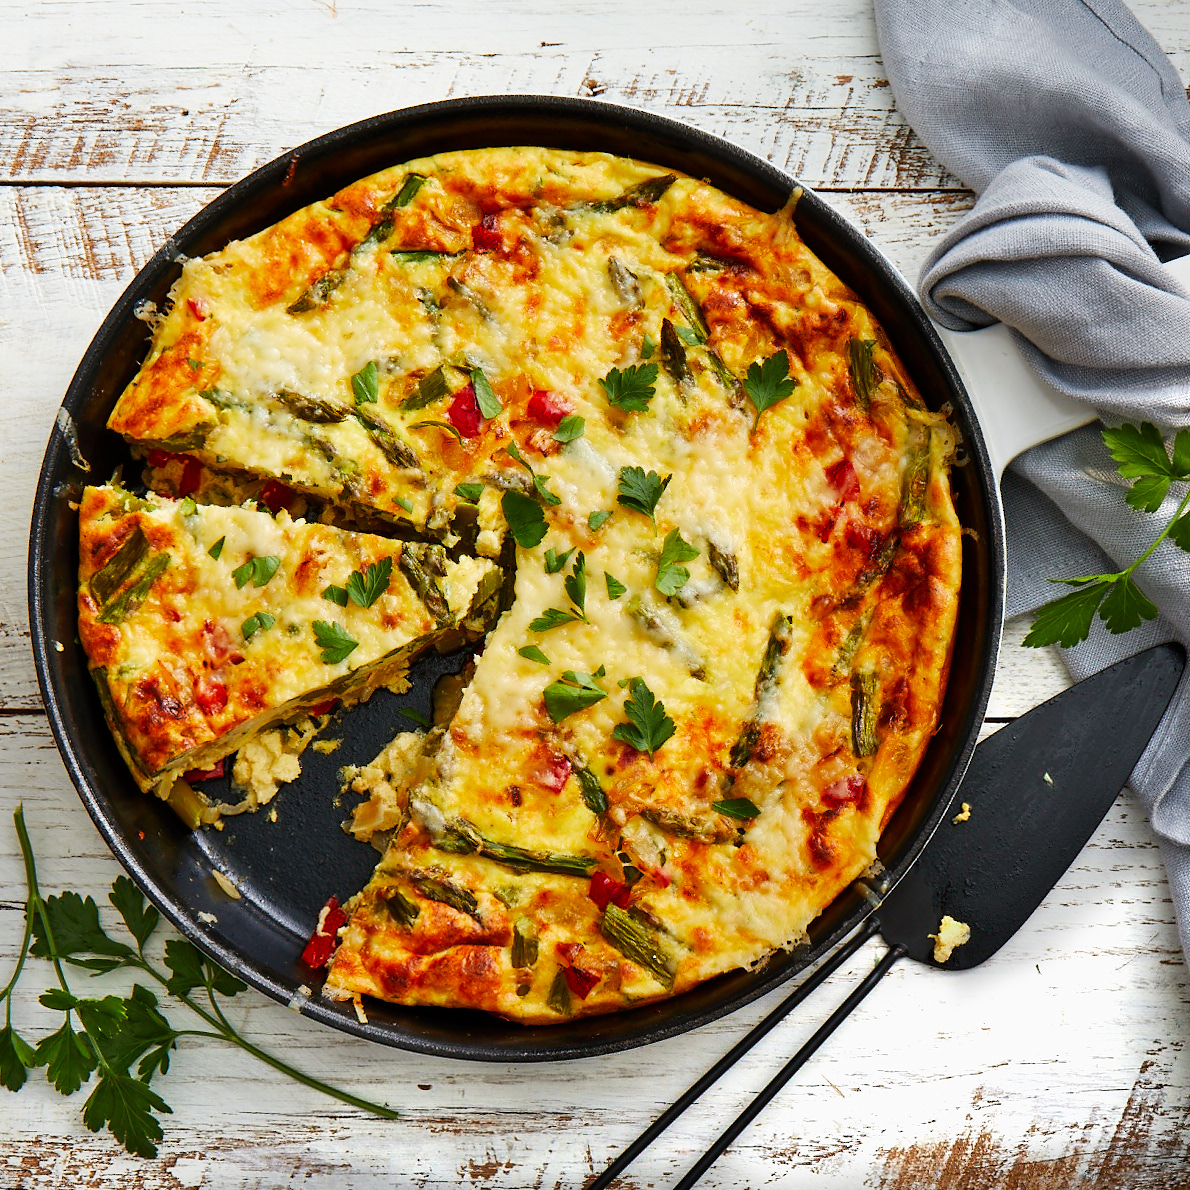 Perfect for a spring brunch or light supper, this Italian omelet is baked so it is easy to serve to a group. Source: EatingWell Magazine, March/April 1997